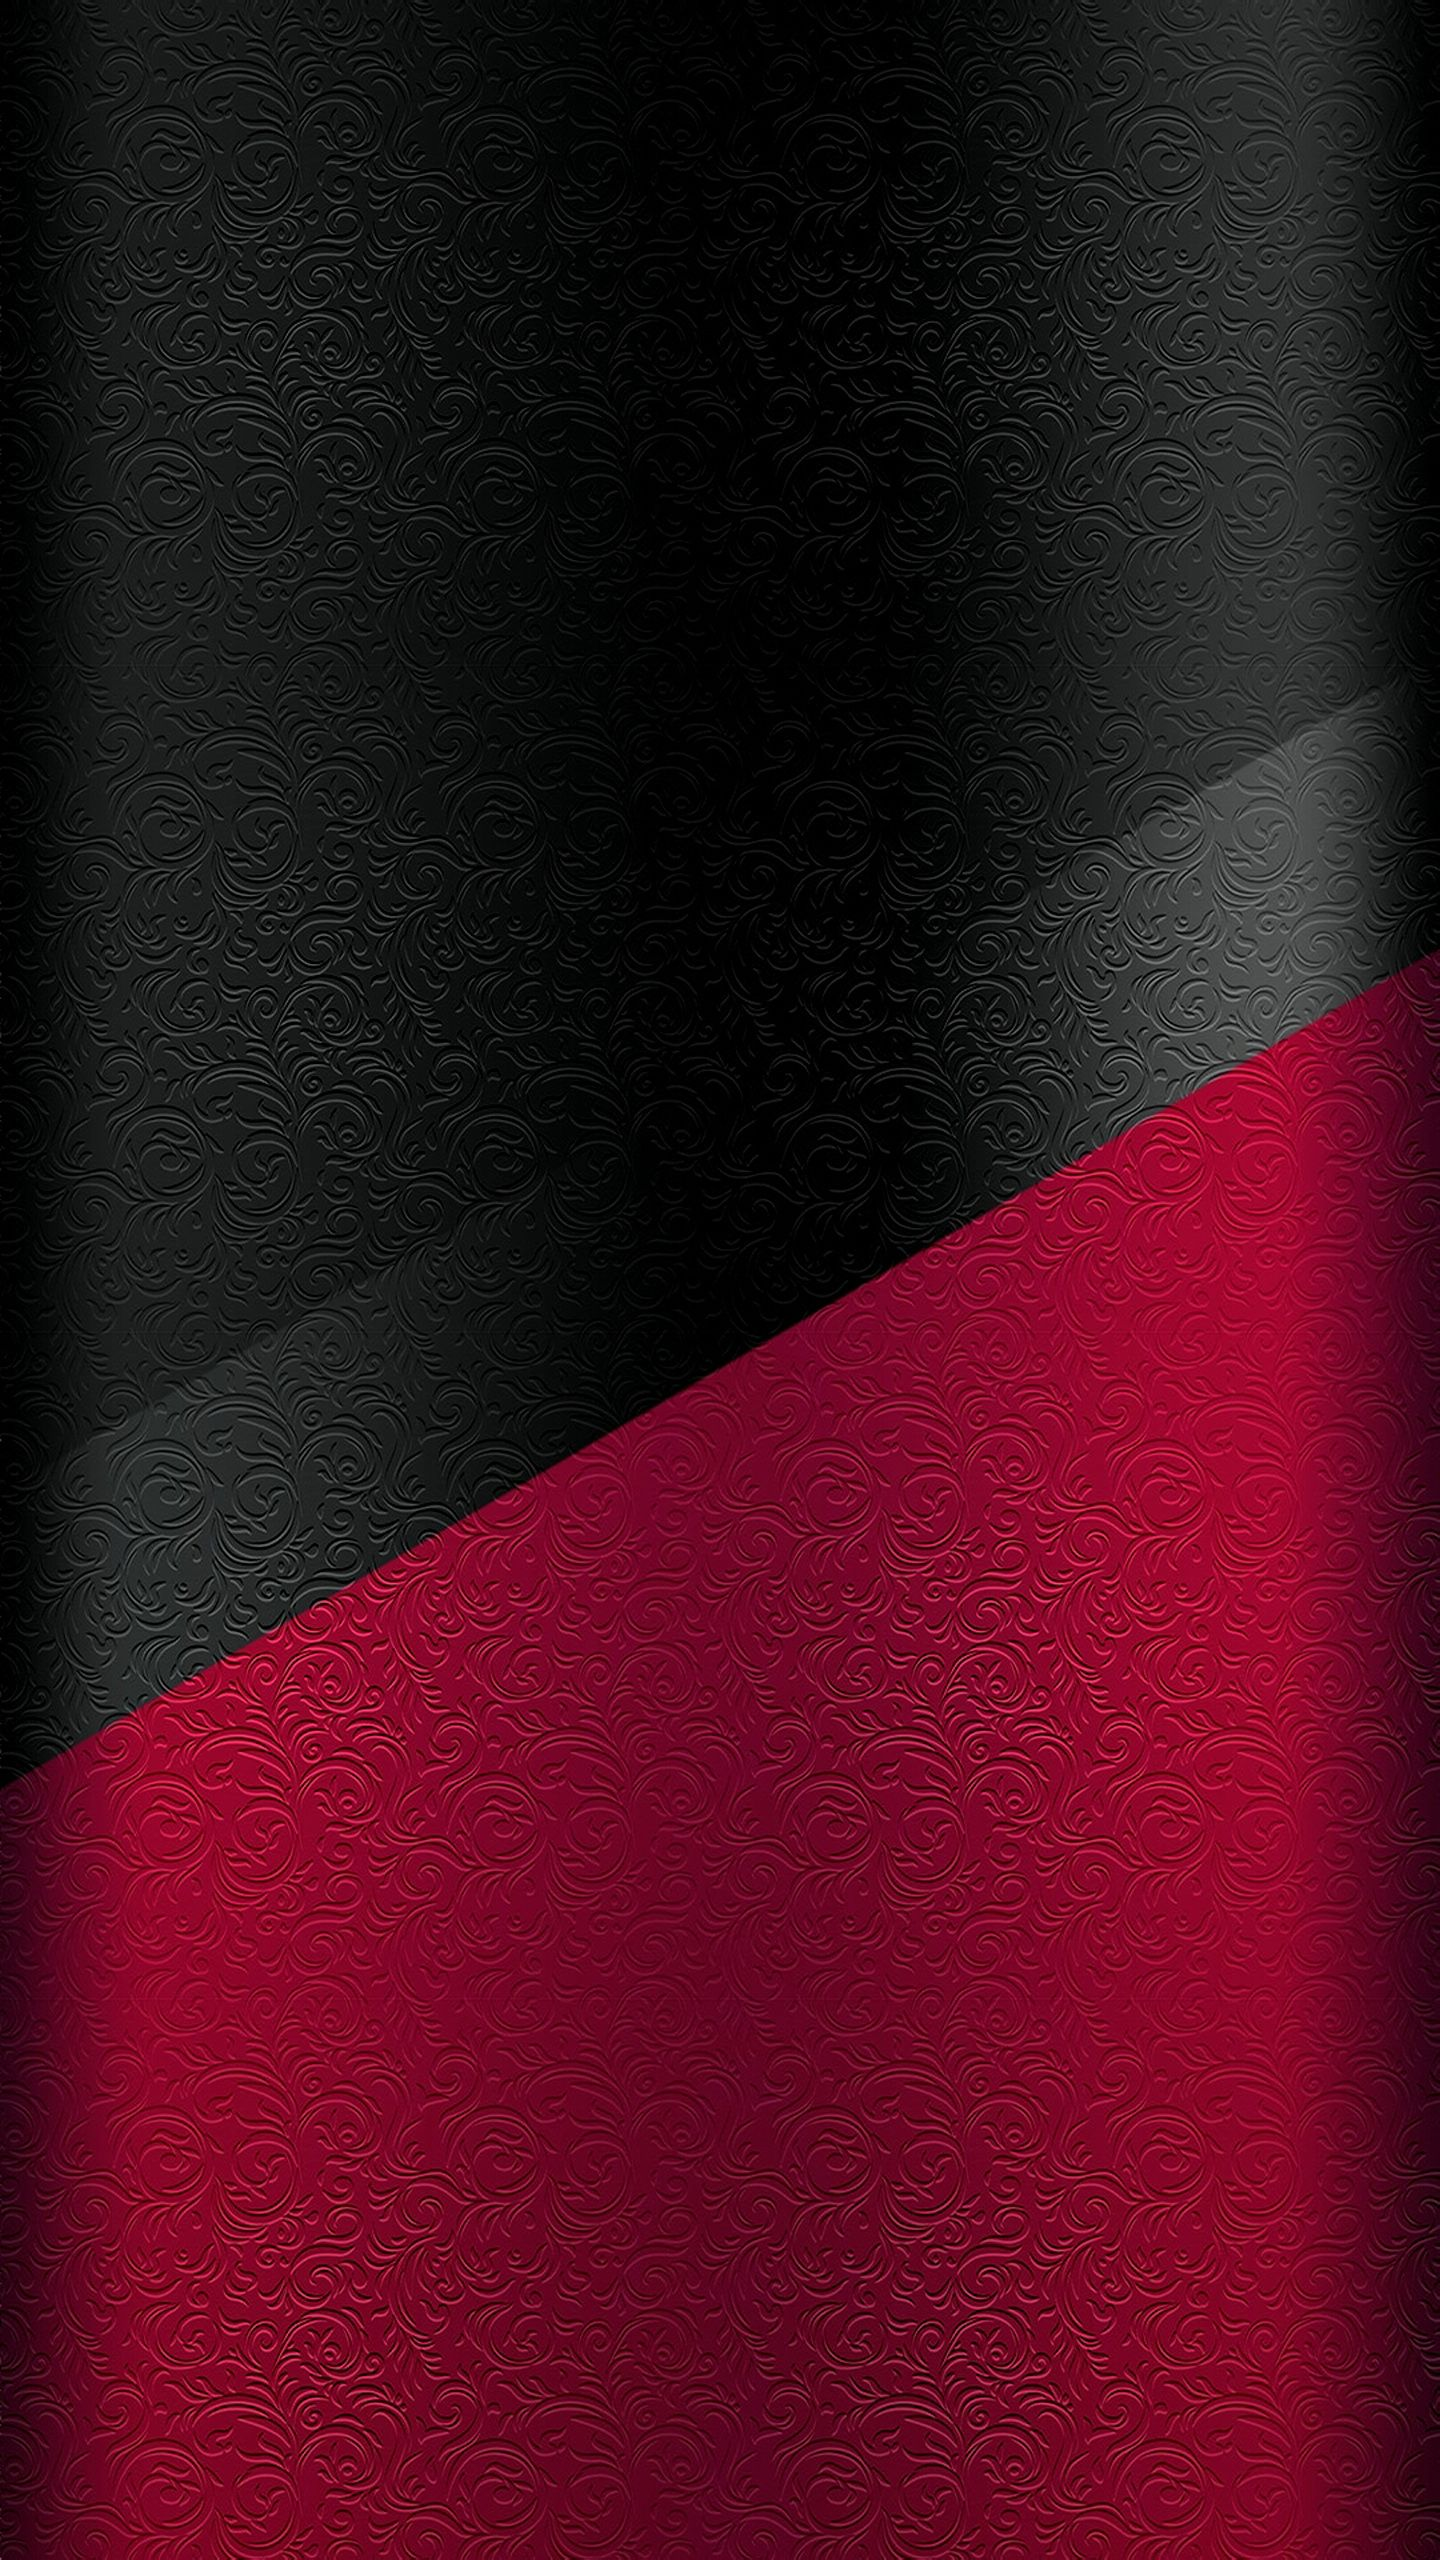 Dark S Edge Wallpaper  With Black And Red Floral Pattern